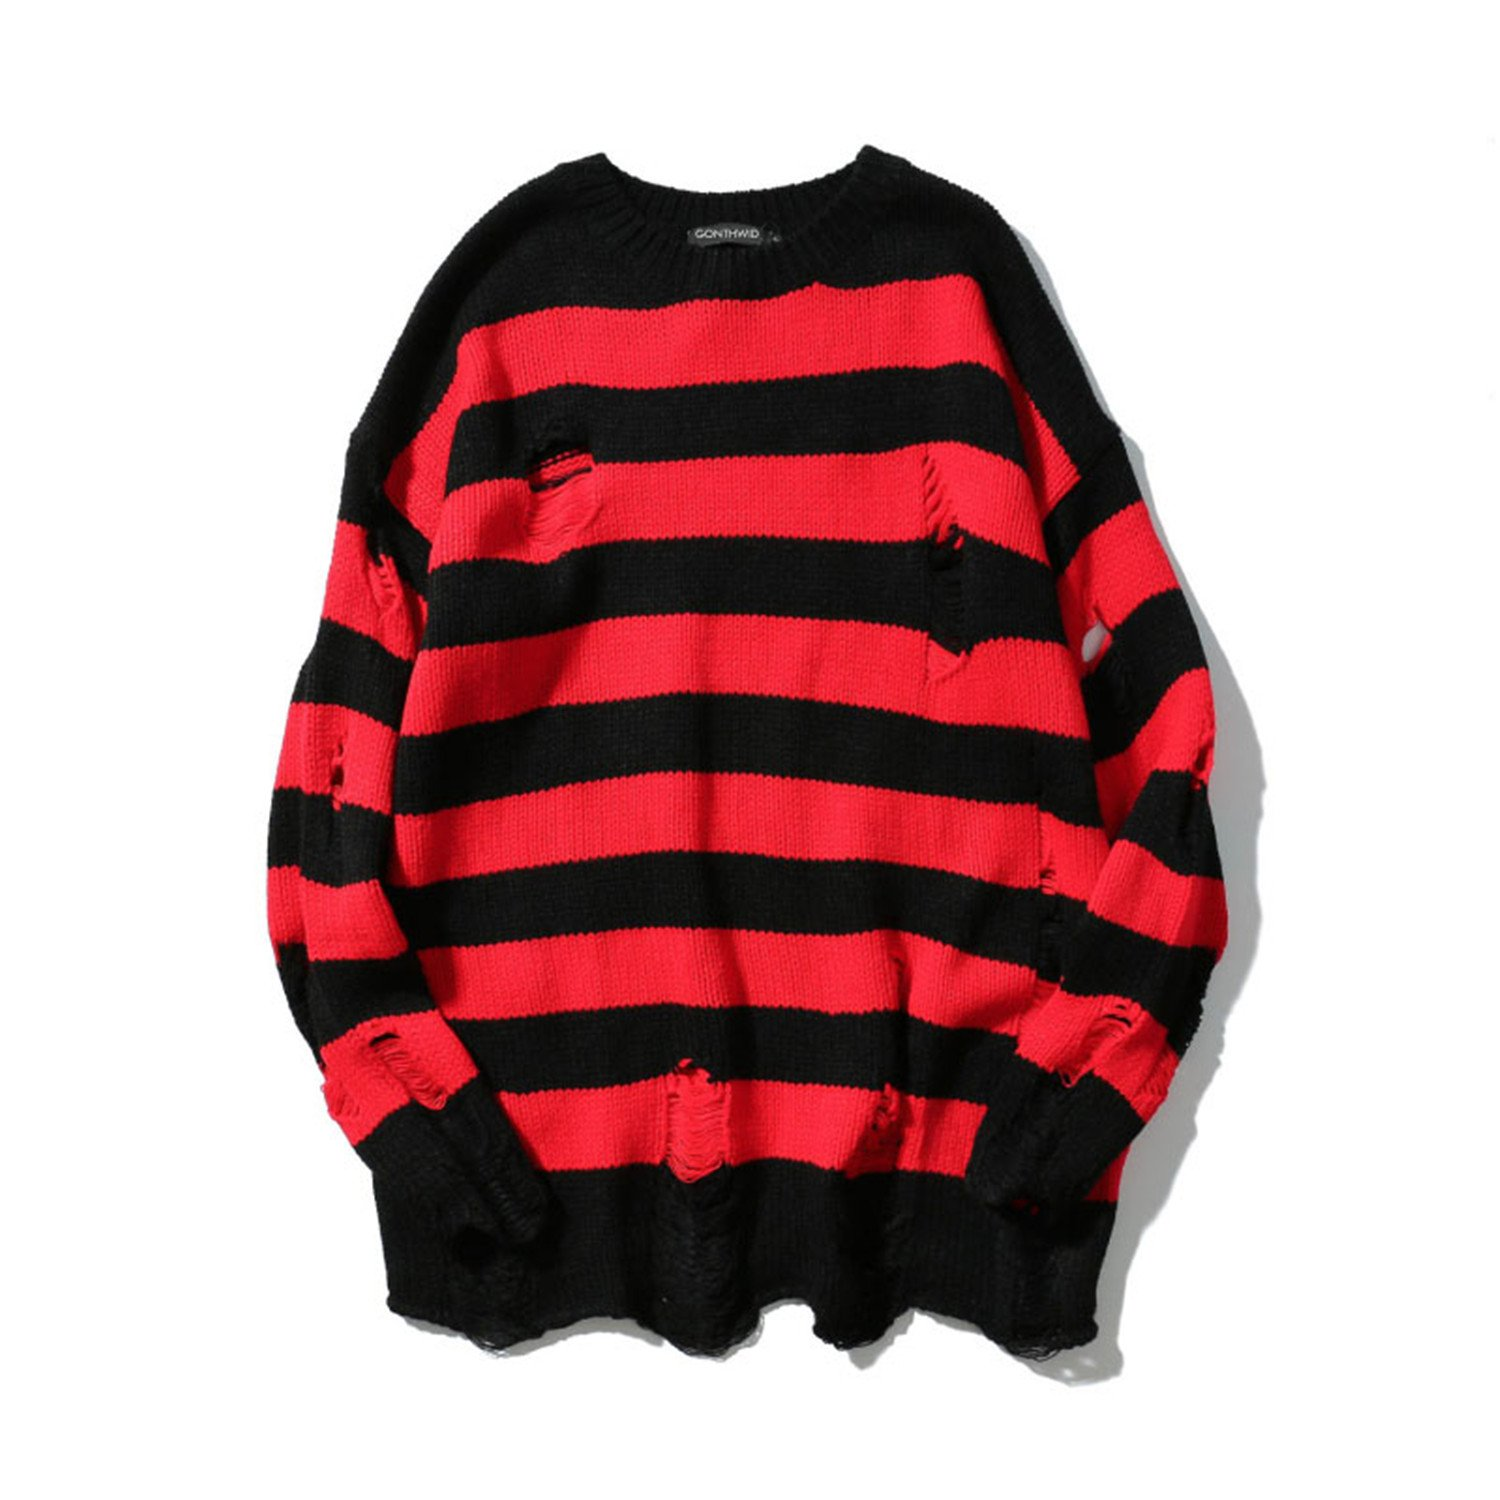 Sonjer Stripe Knit Sweaters Men Hip Hop Hole Casual Pullover Sweater Male Fashion Loose Long Sleeve Sweaters Red Black